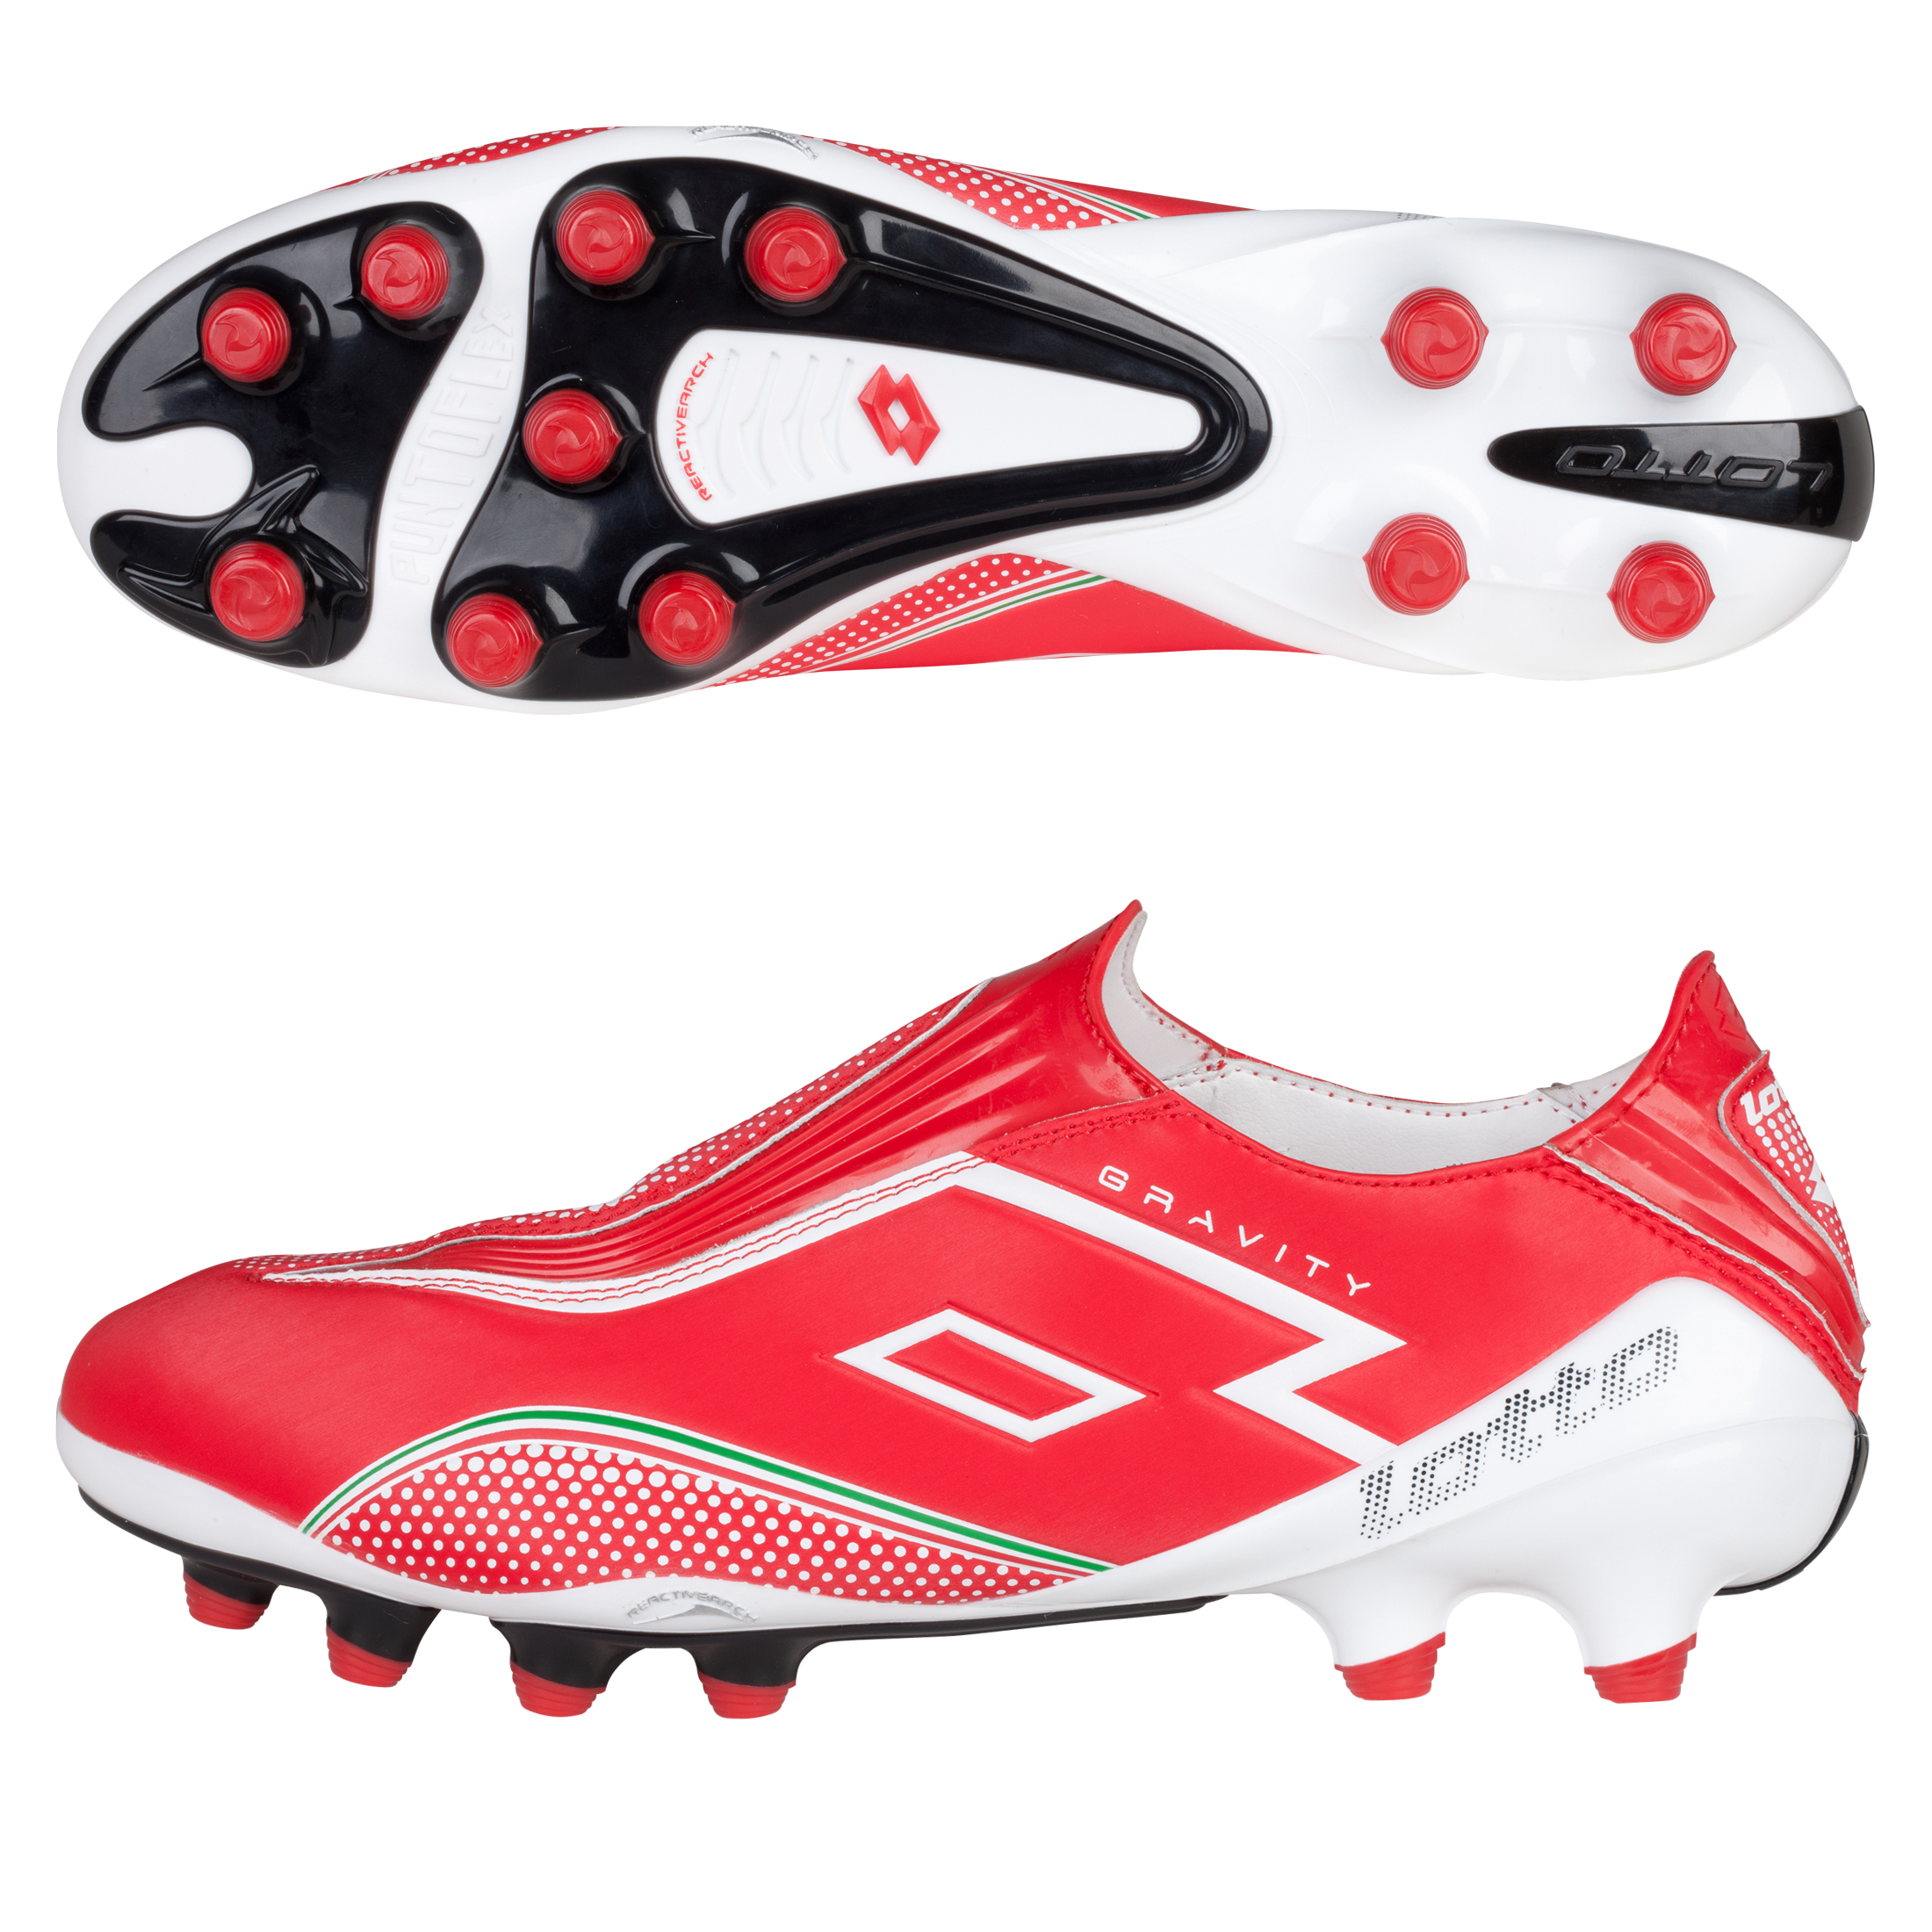 Lotto Zhero Gravity.II 100 Firm Ground Football Boots - Risk Red/White